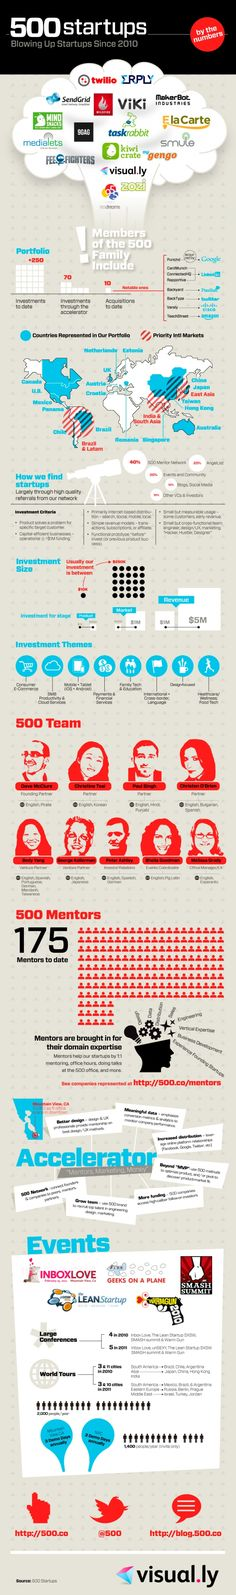 500 Startups : Blowing Up Startups Since 2010